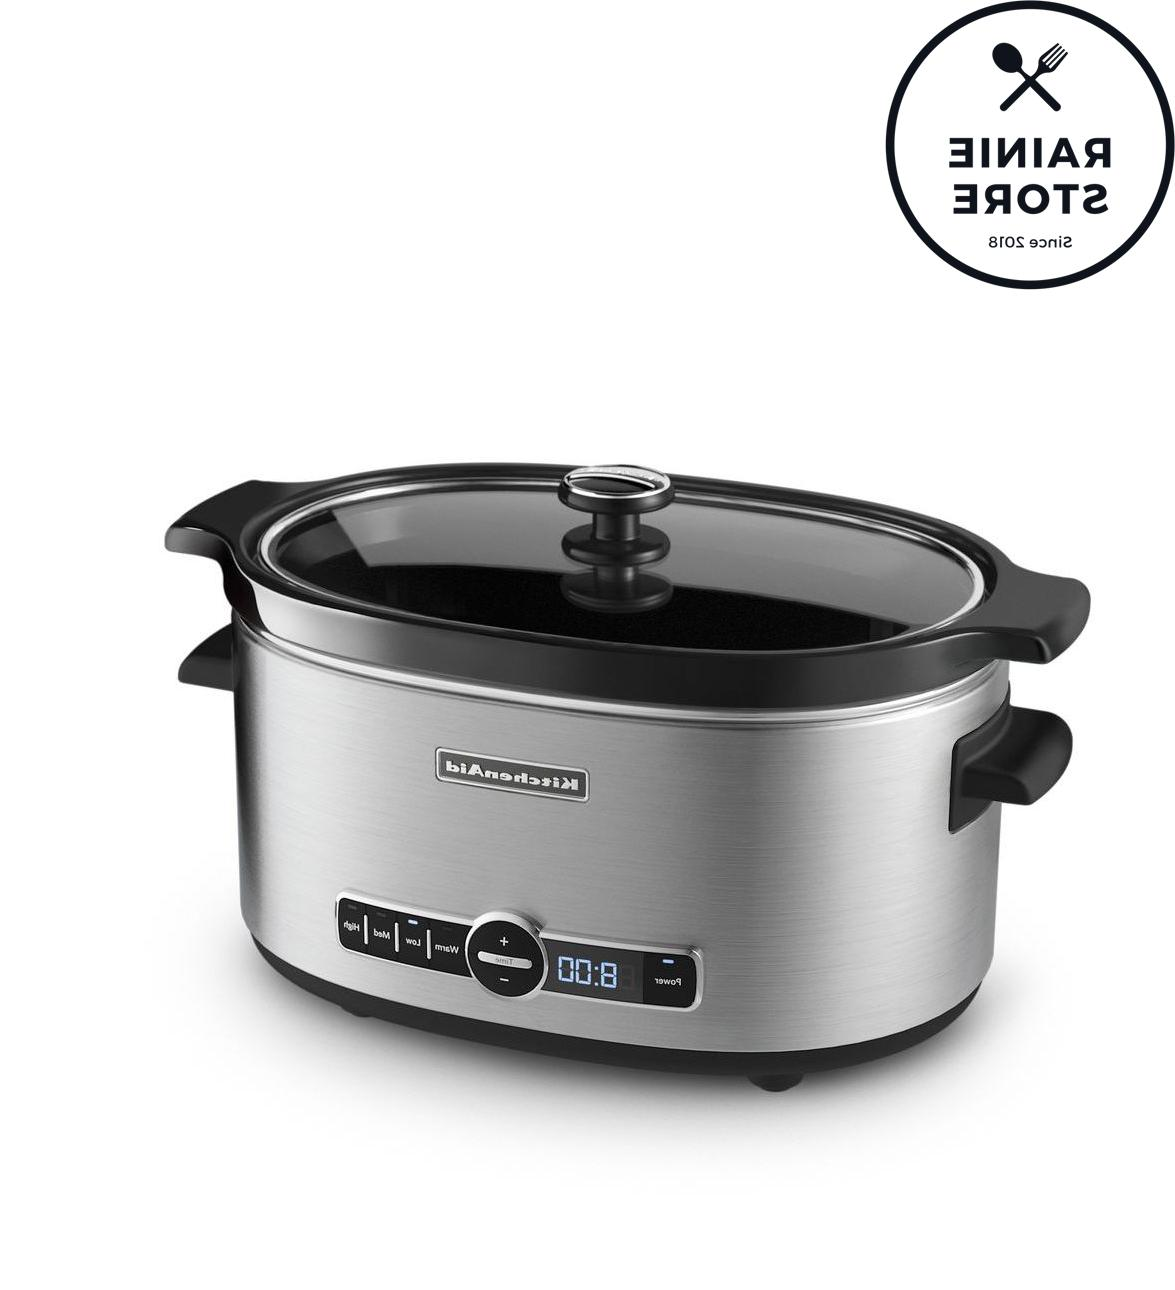 6 quart slow cooker with solid glass